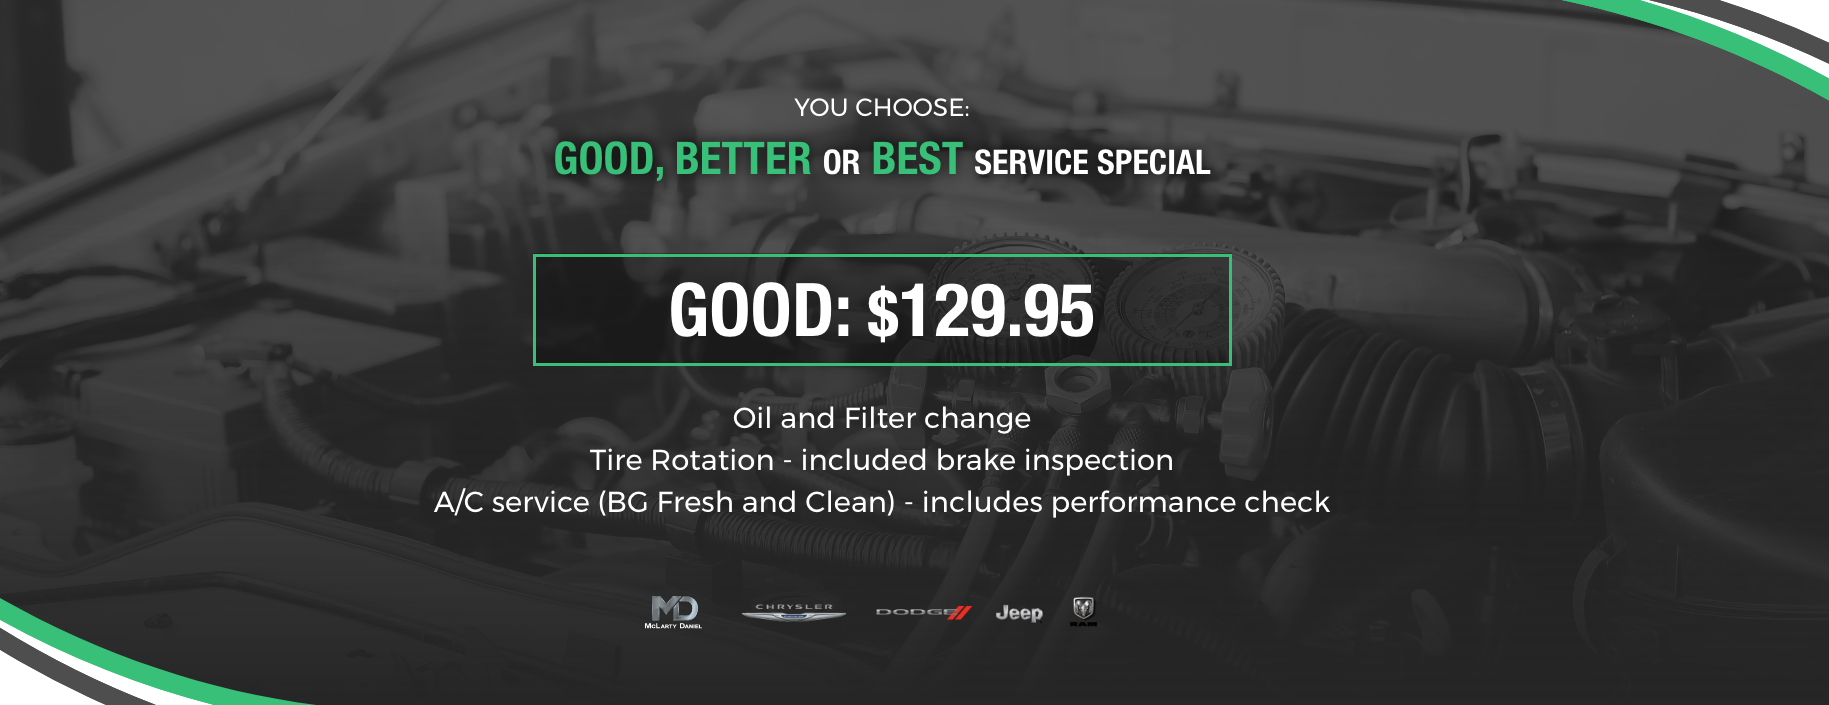 You Choose Service Special: Good